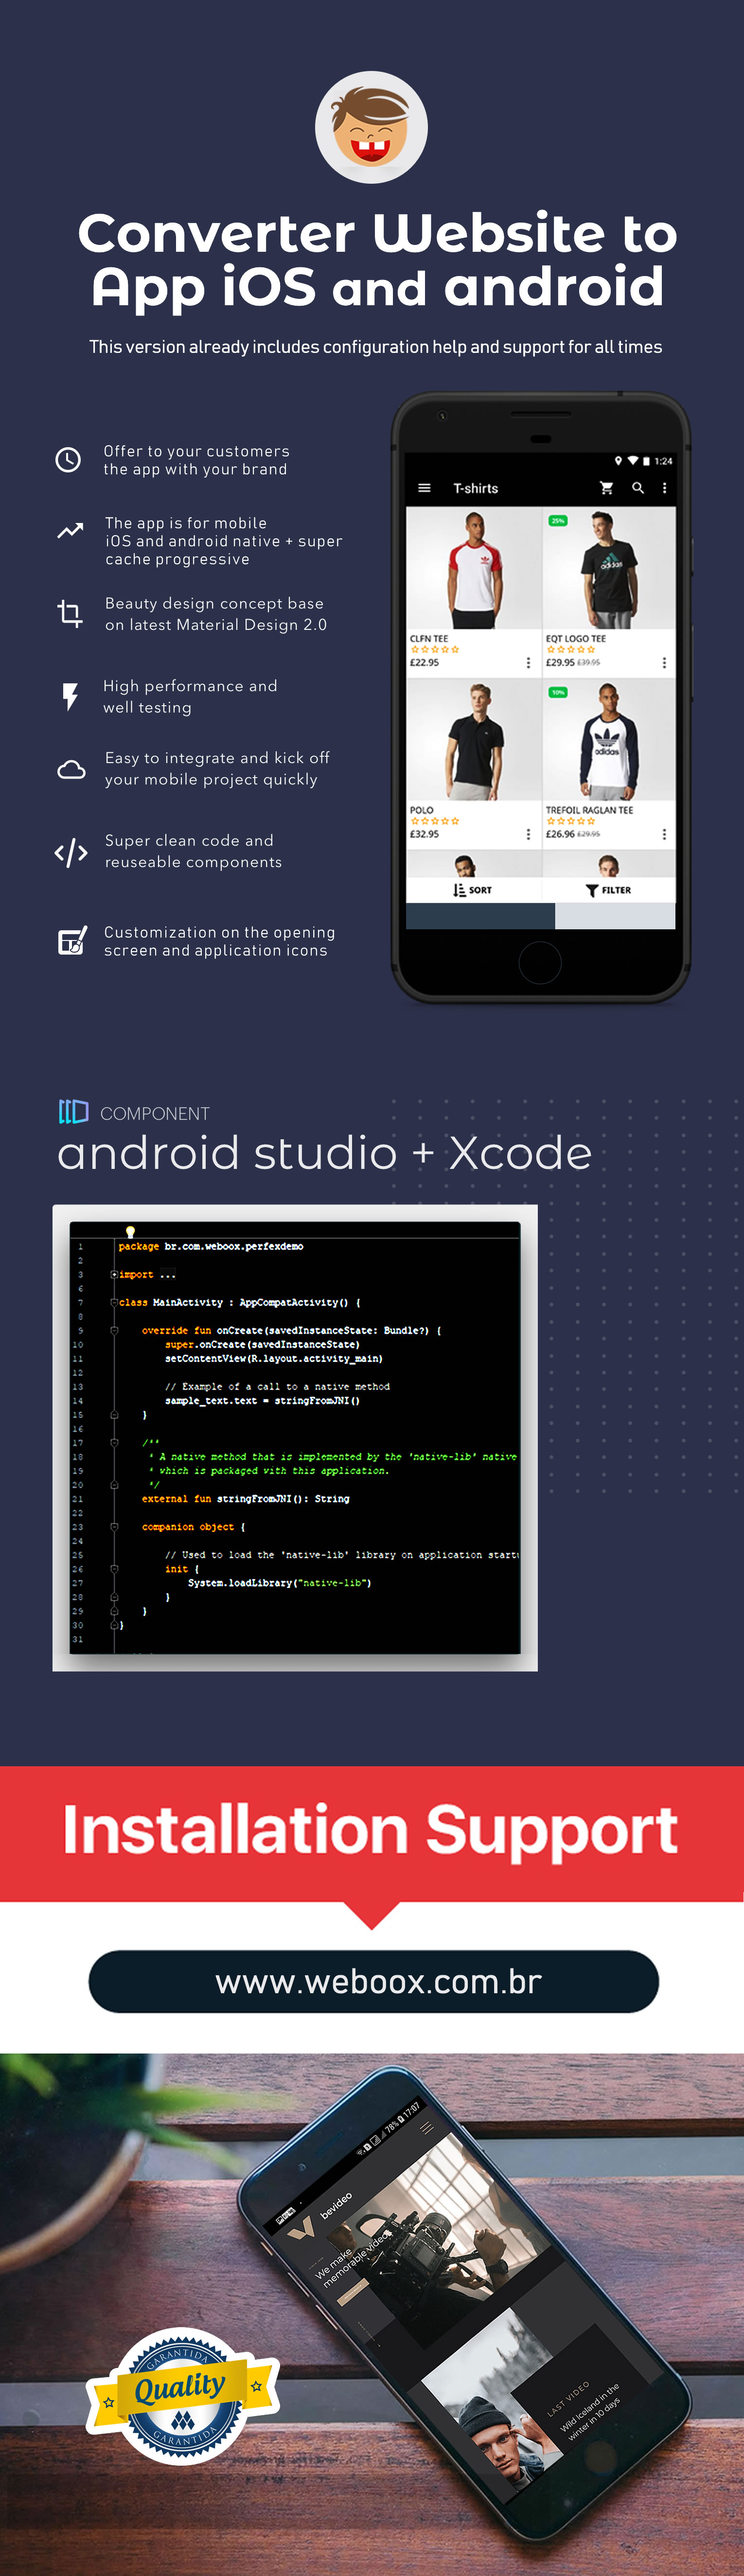 Weboox Convert - Website to app Android Native - 3